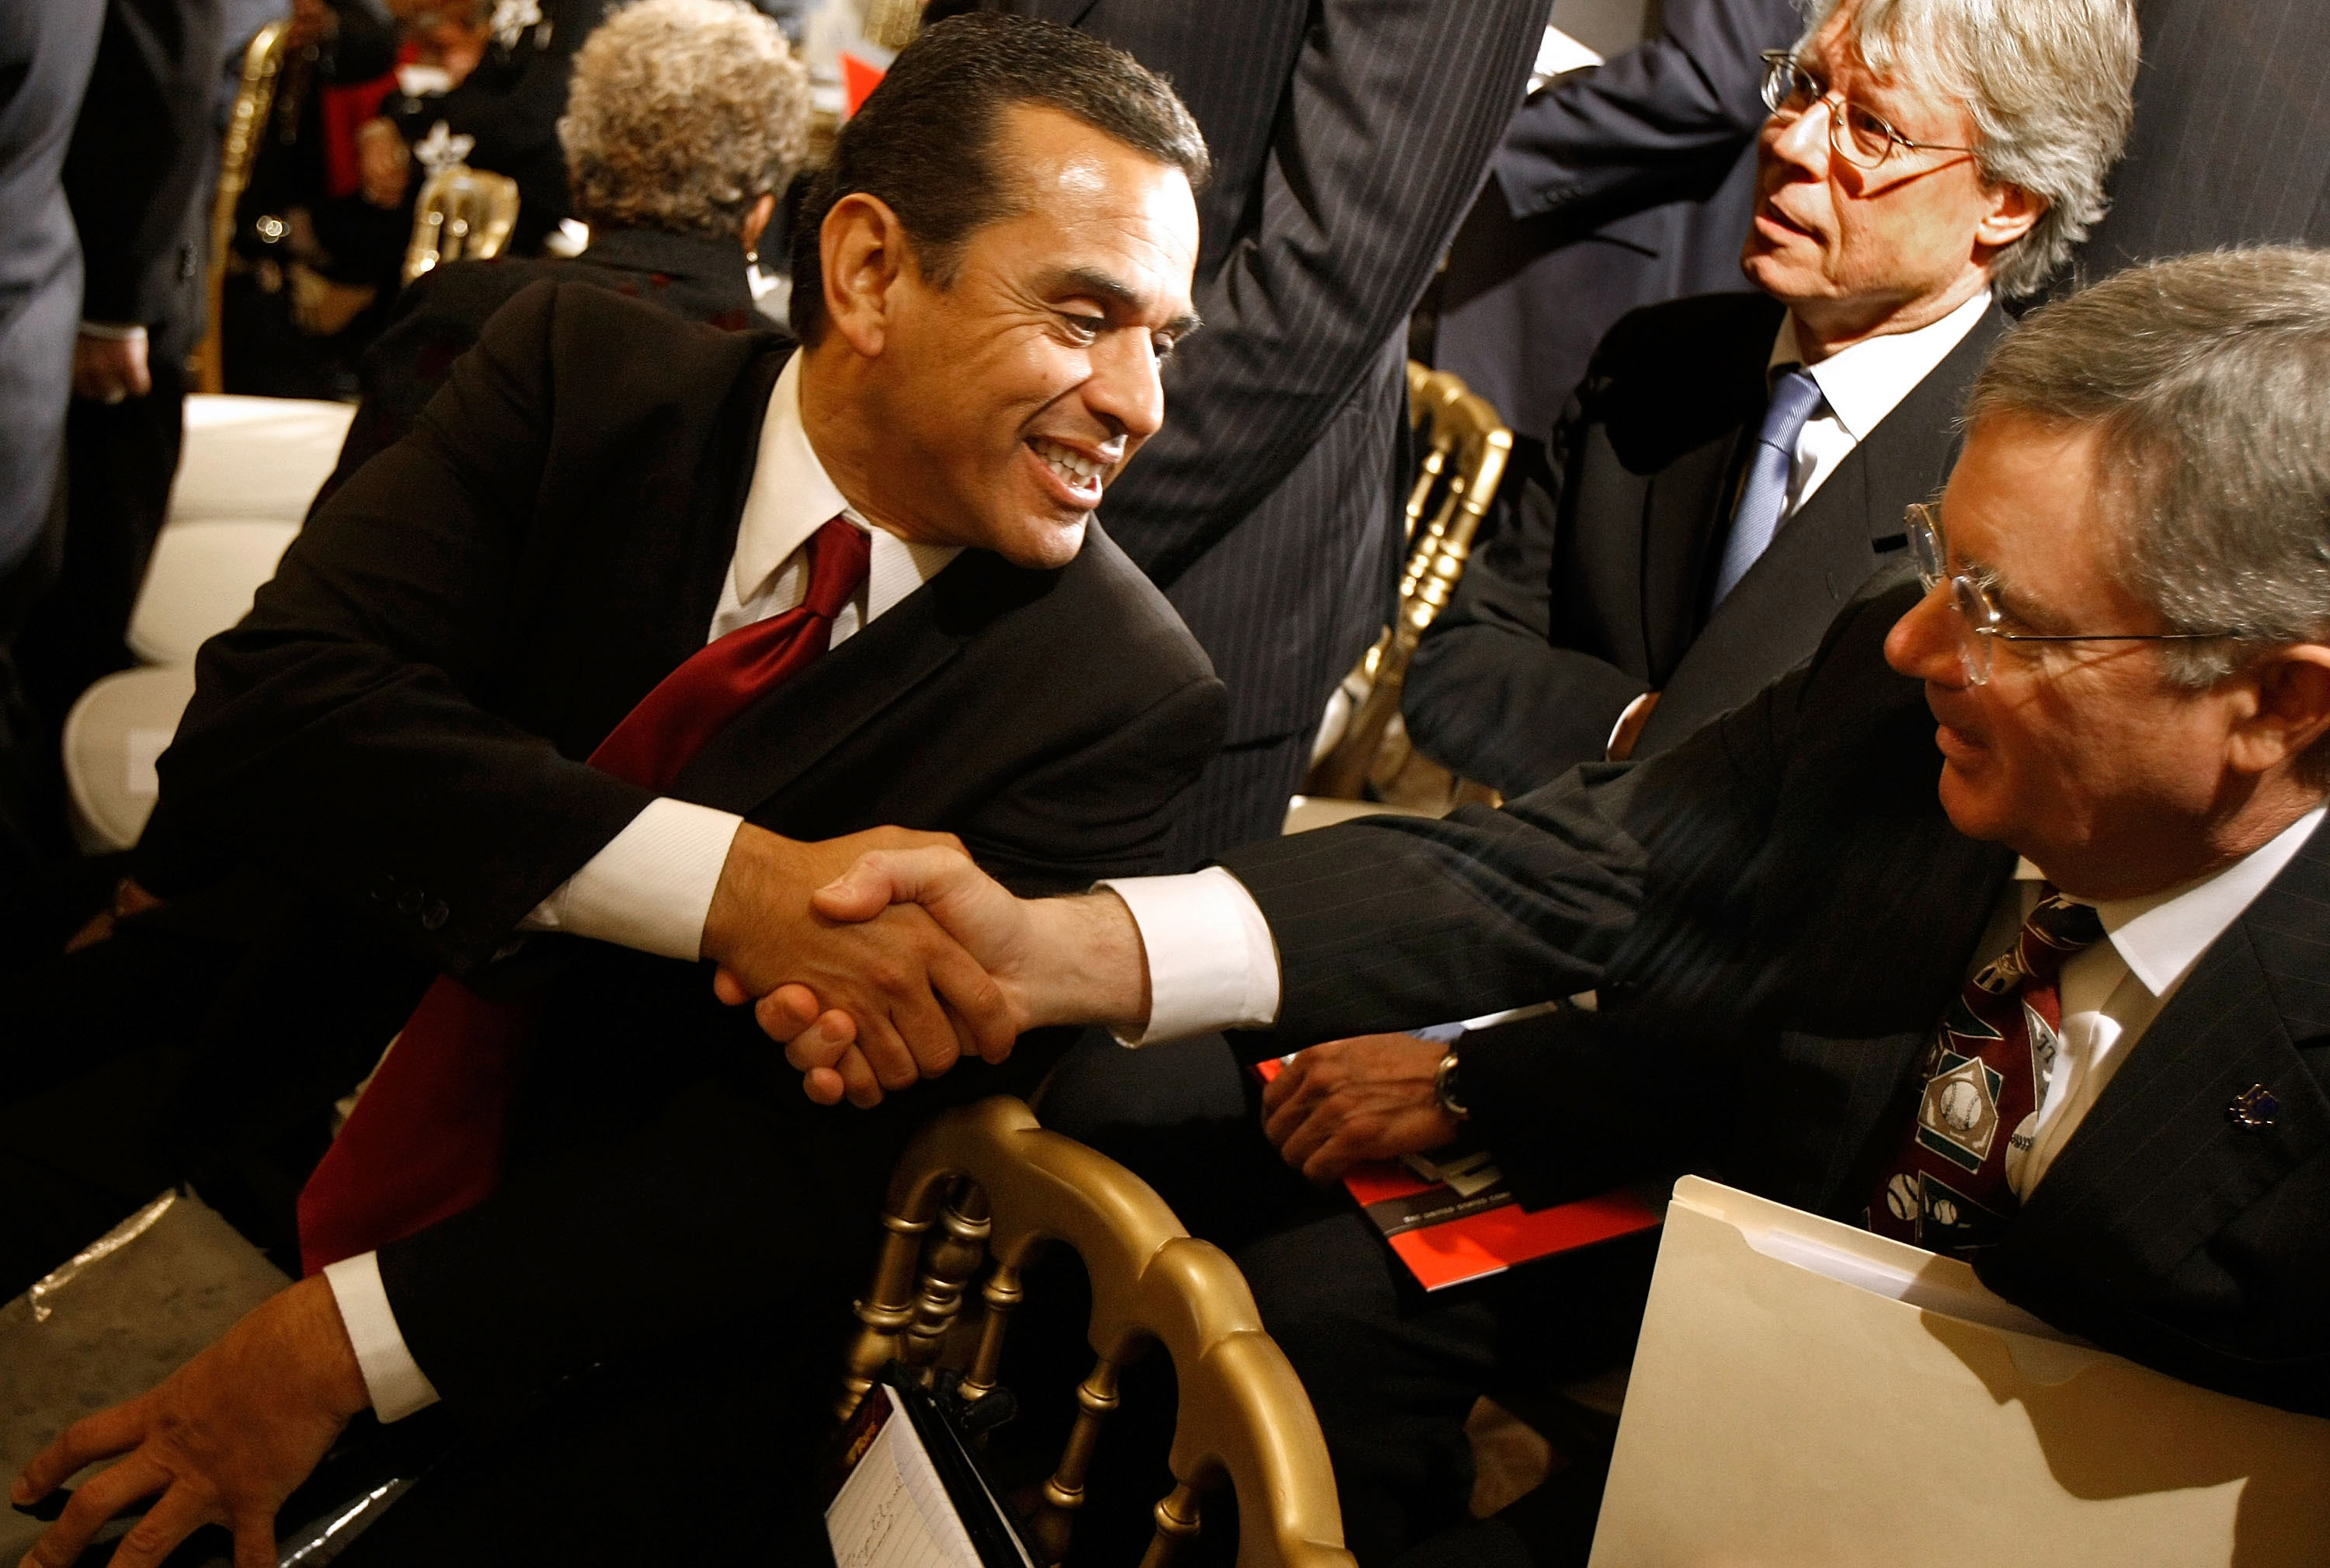 Los Angeles Mayor Antonio Villaraigosa